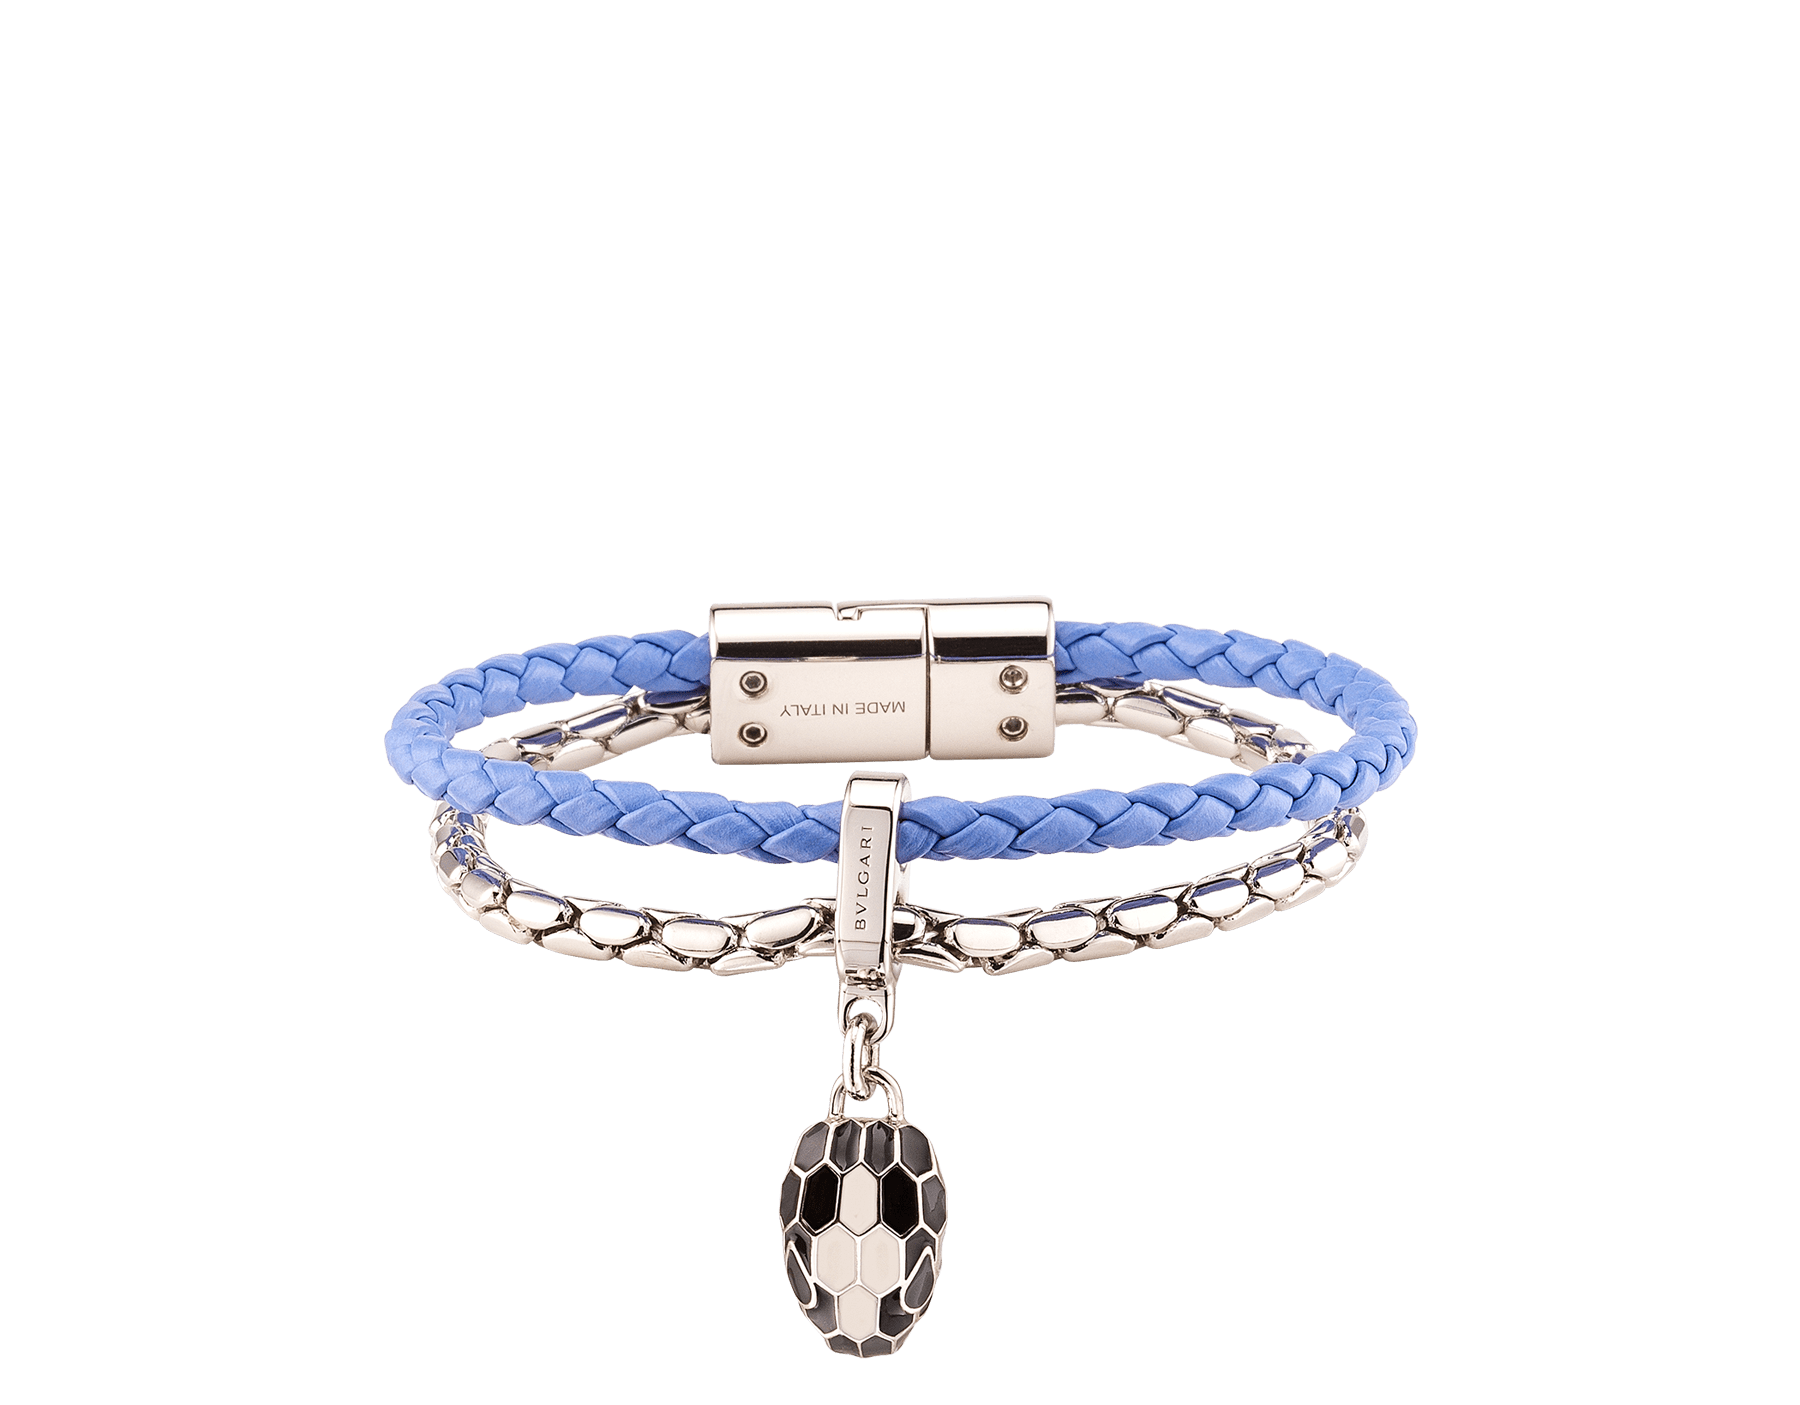 """Serpenti Forever"" bracelet in Lavander Amethyst lilac braided calf leather and palladum plated brass snake body-shaped chain with the iconic snakehead charm in black and white agate enamel, and black enamel eyes with a magnetic clasp closure. SerpBraidChain-WCL-LA image 1"